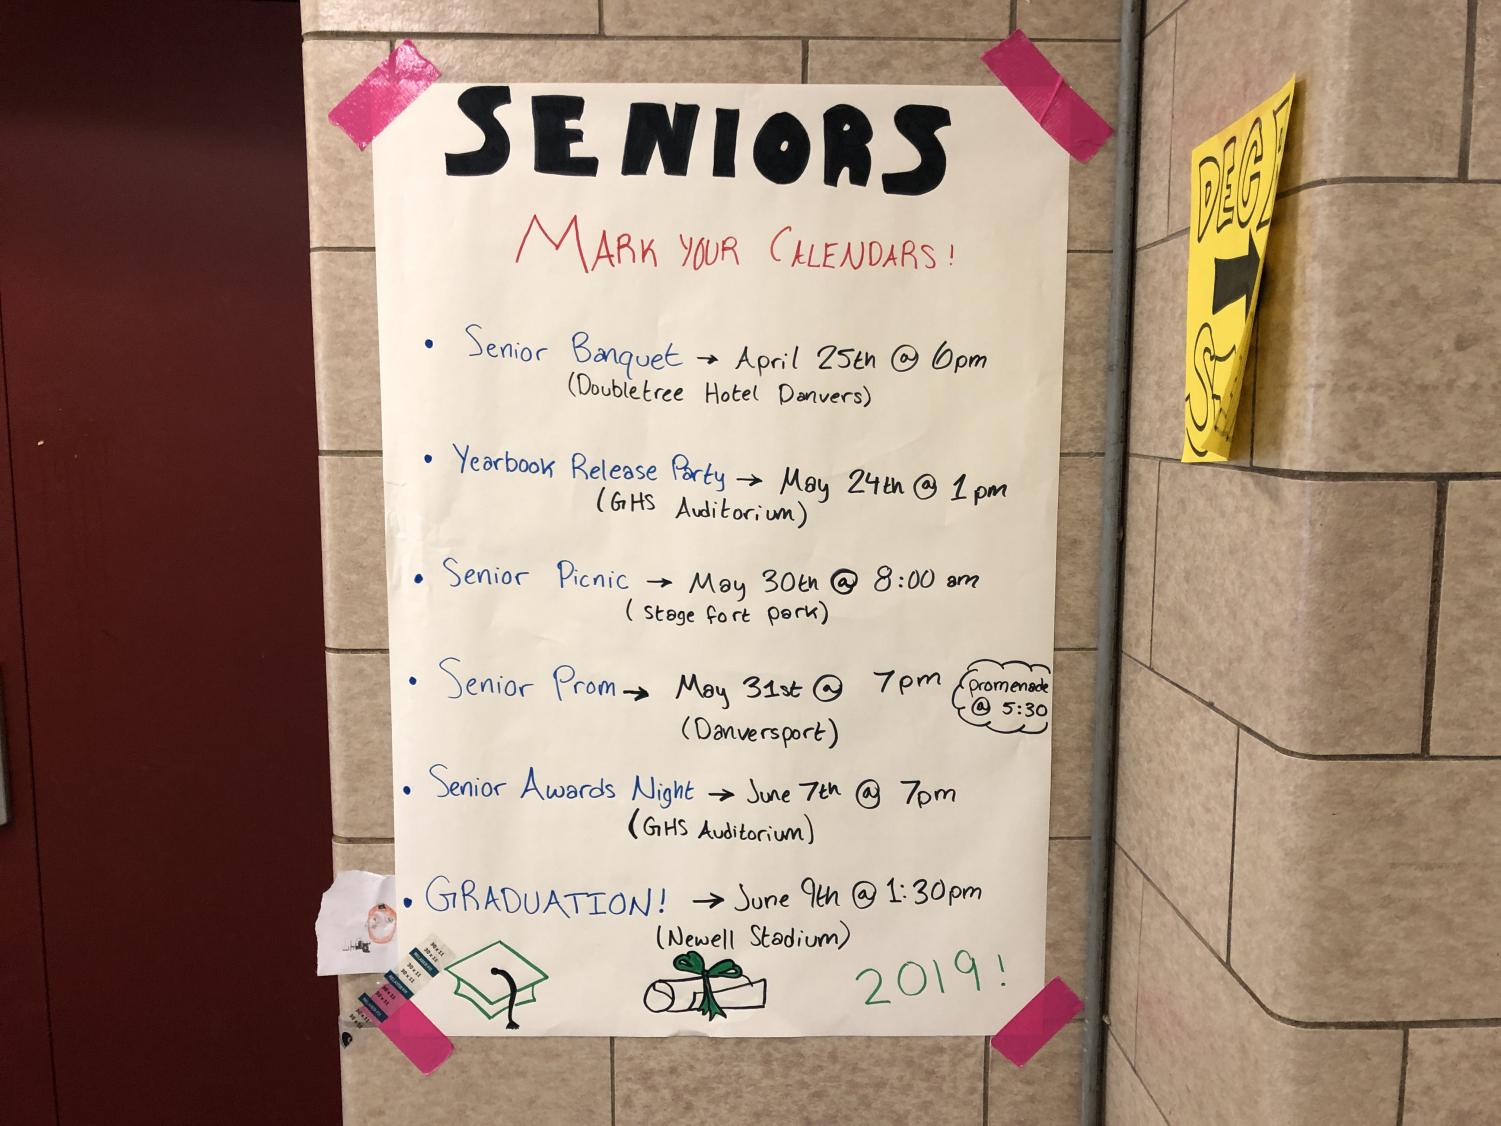 Important dates and events for seniors are posted next to the ticket booth.